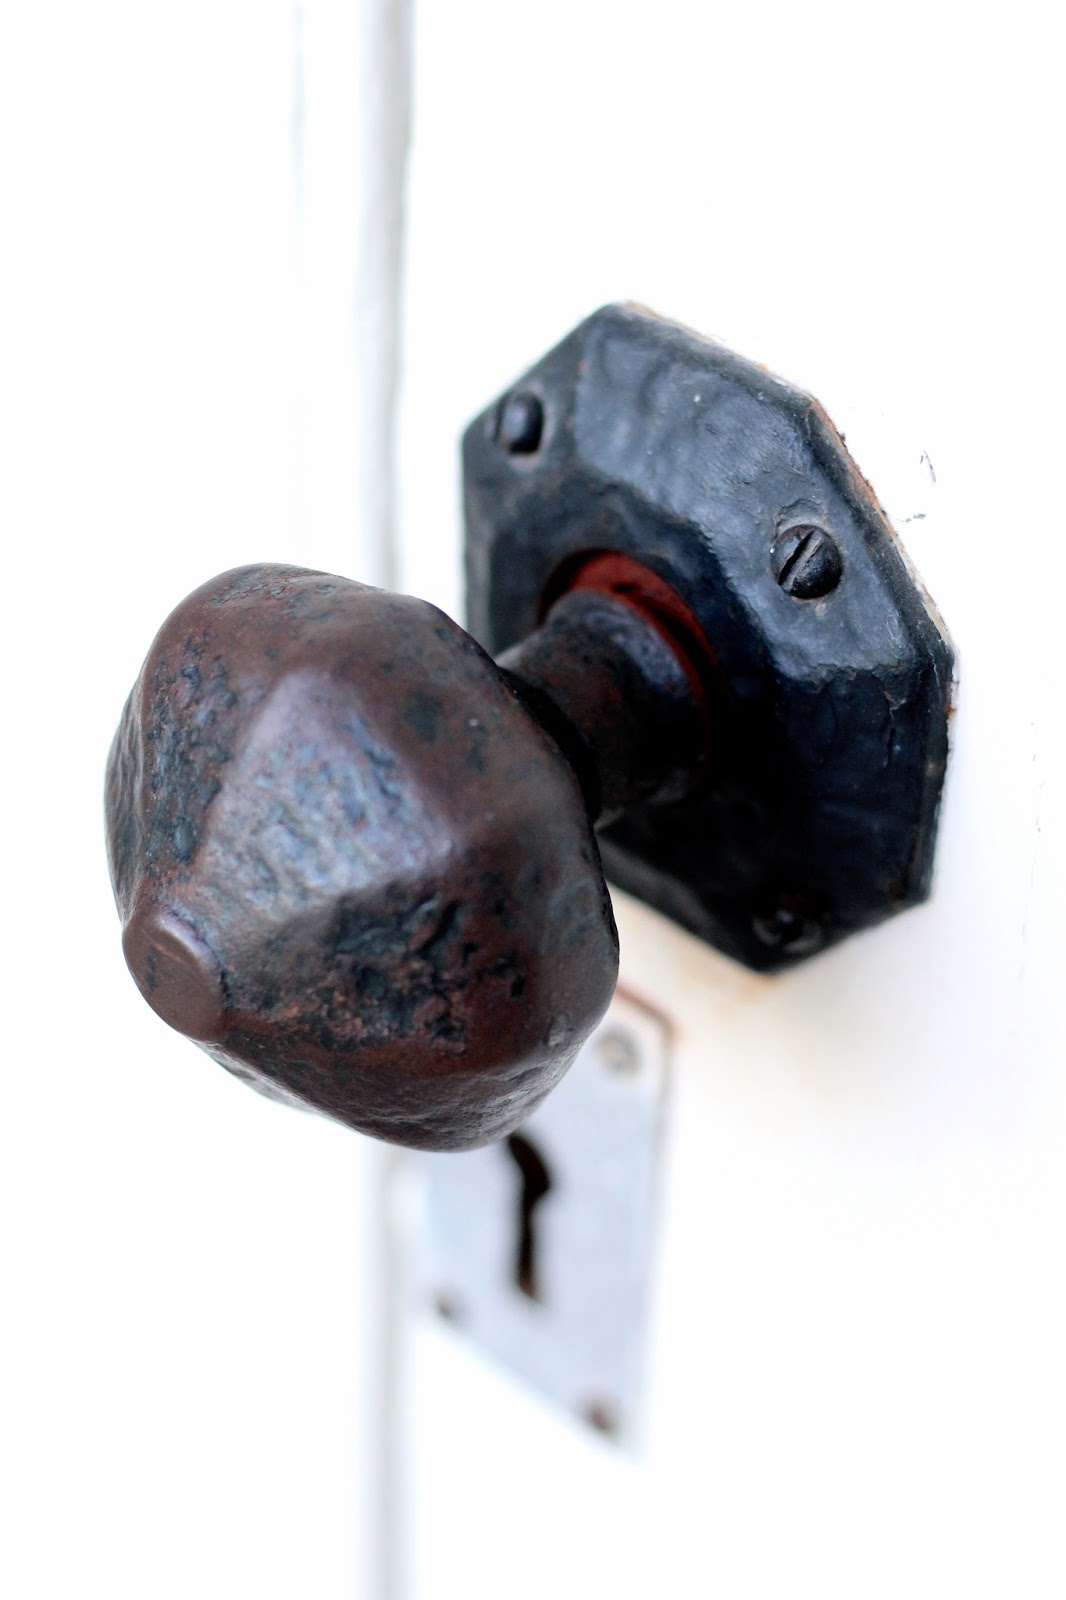 Close up Canon photography of old doorknob